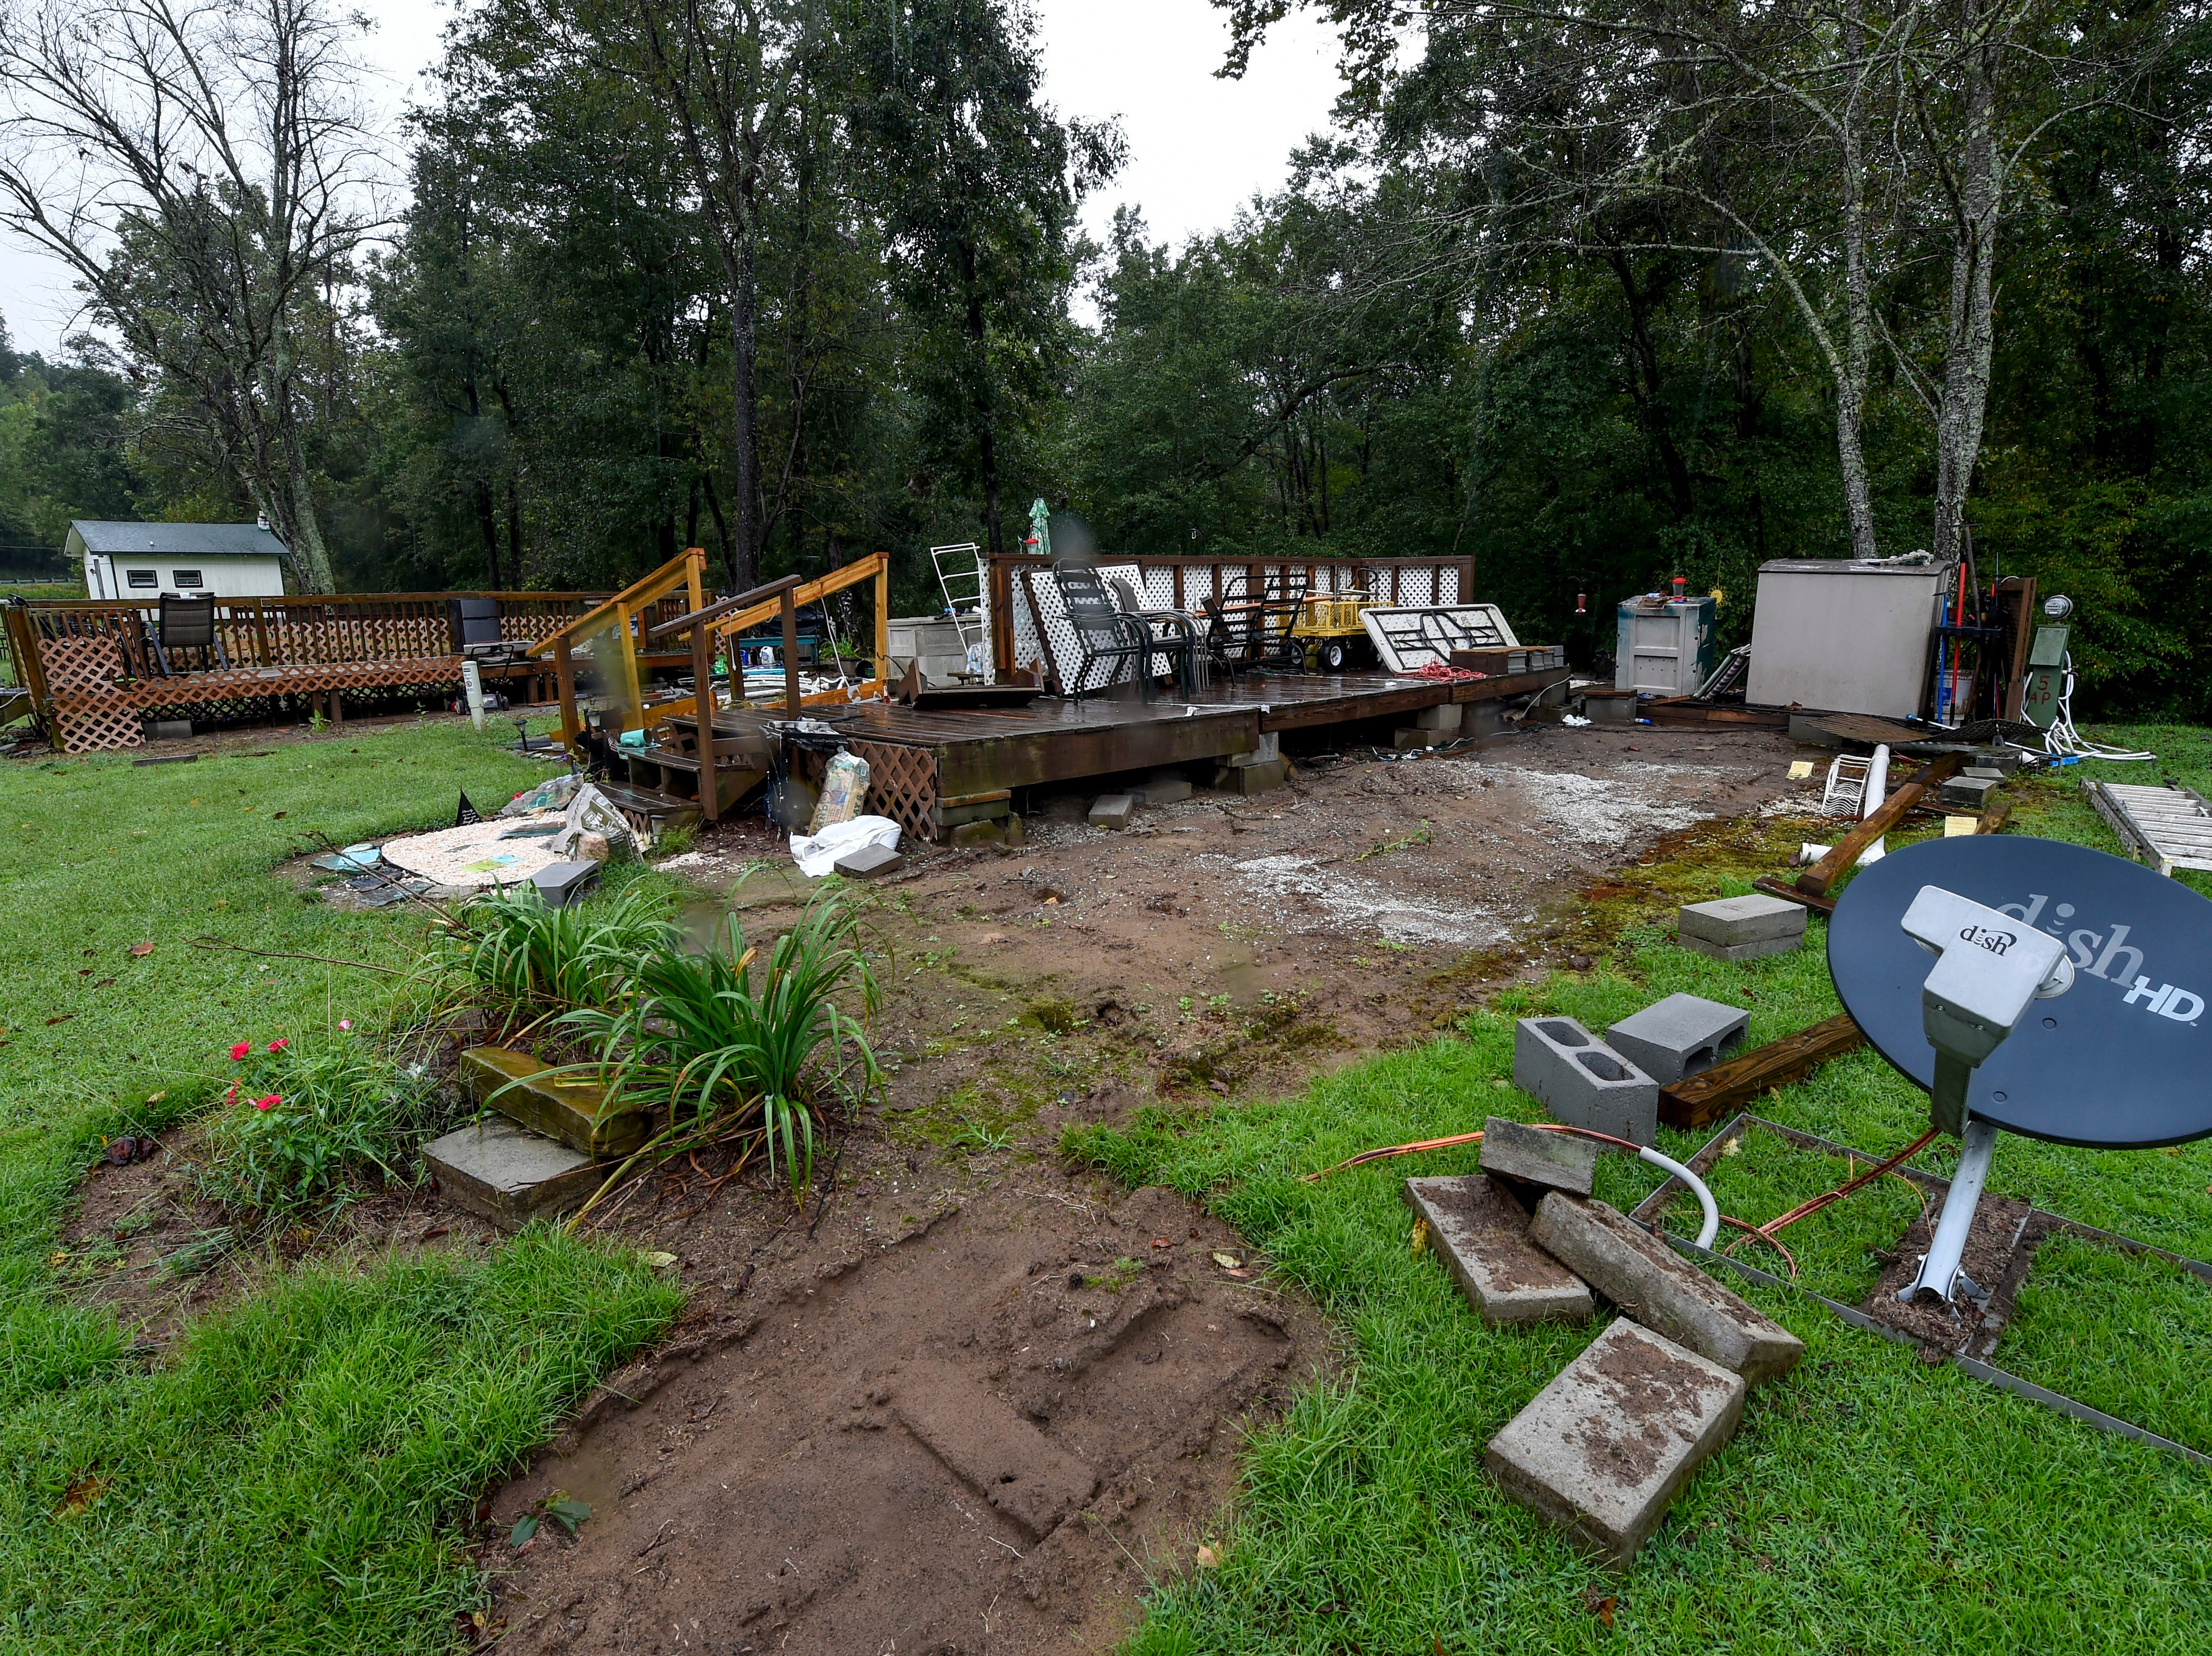 Permanent platforms are empty after their trailers at a park off Route 181 were relocated in anticipation of the adjacent rising water of Steele Creek as a result of the effects of Tropical Storm Florence, Sunday, Sept. 16, 2018 in Morganton, N.C.